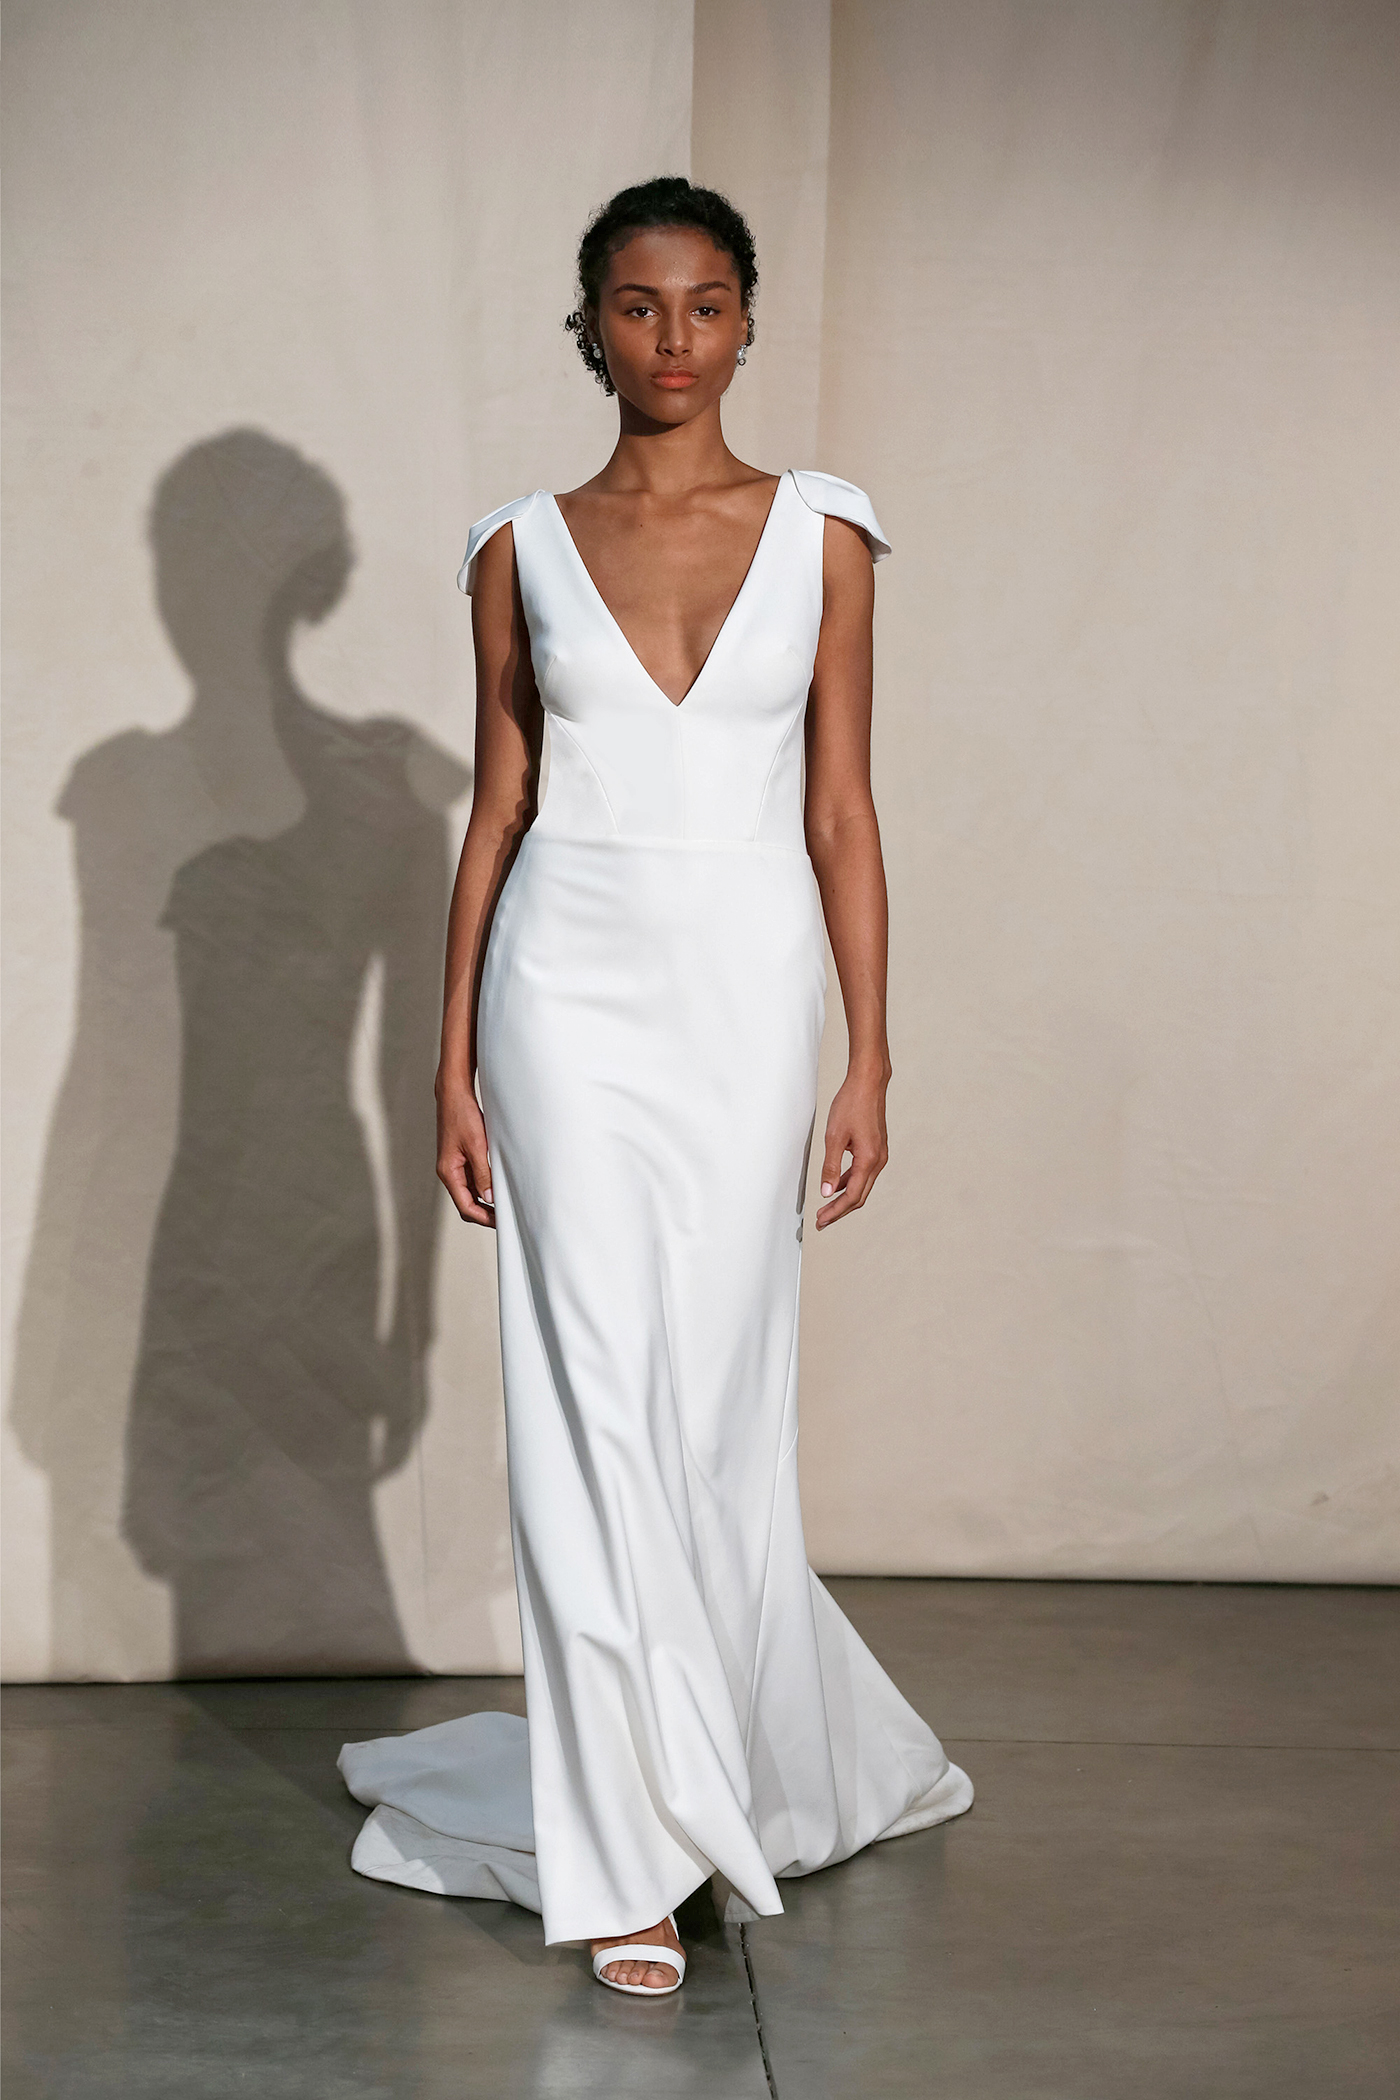 justin alexander v-neck shoulder detail wedding dress spring 2020